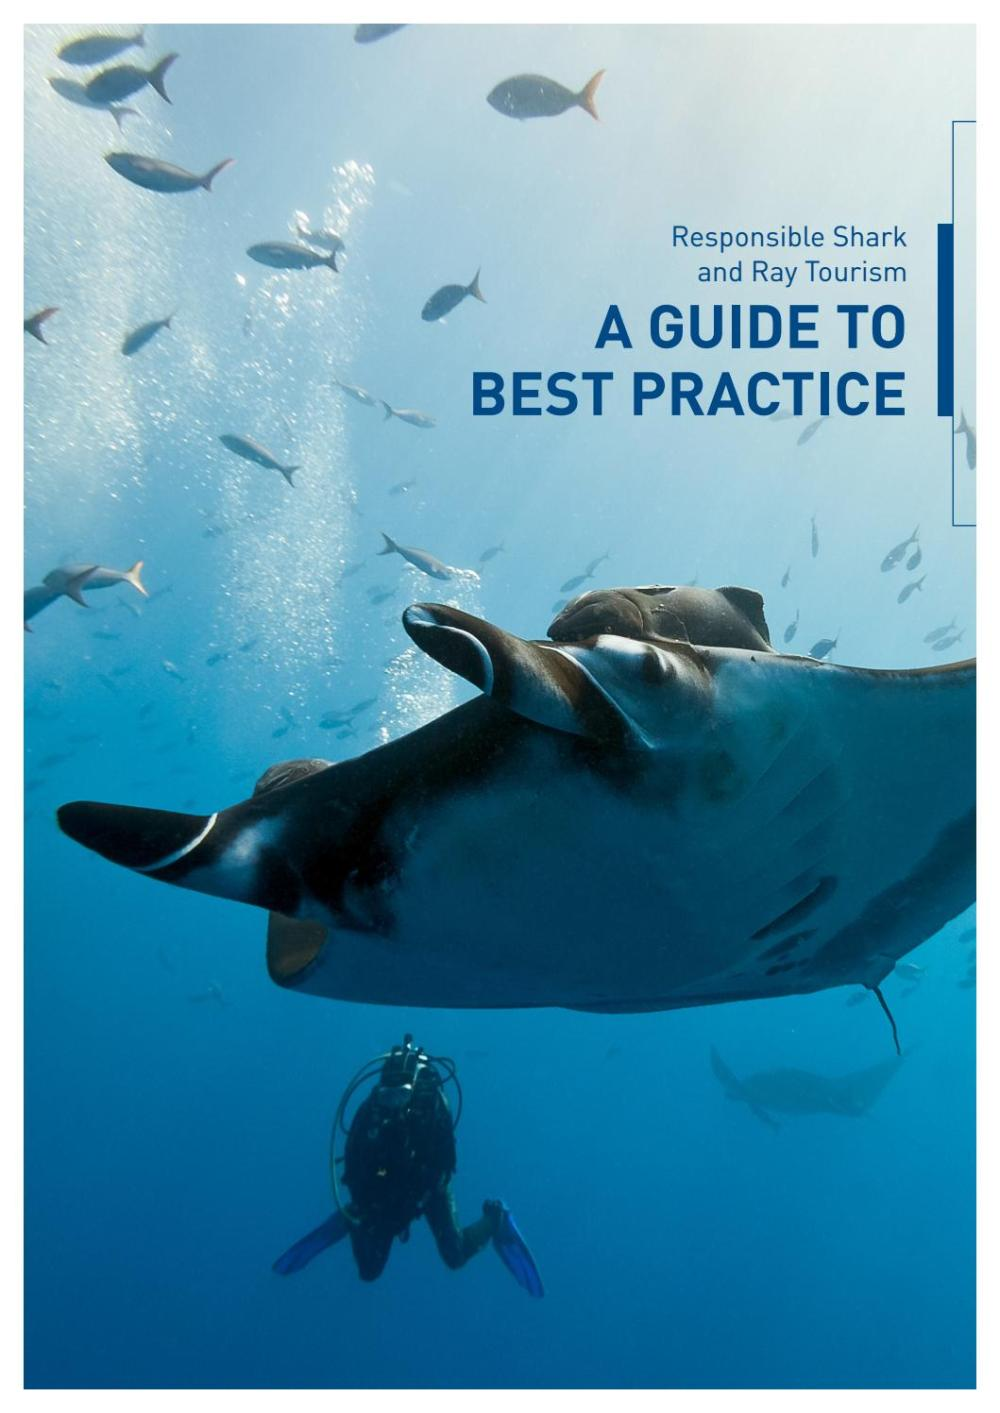 medium resolution of responsible shark ray tourism a guide to best practice by project aware issuu